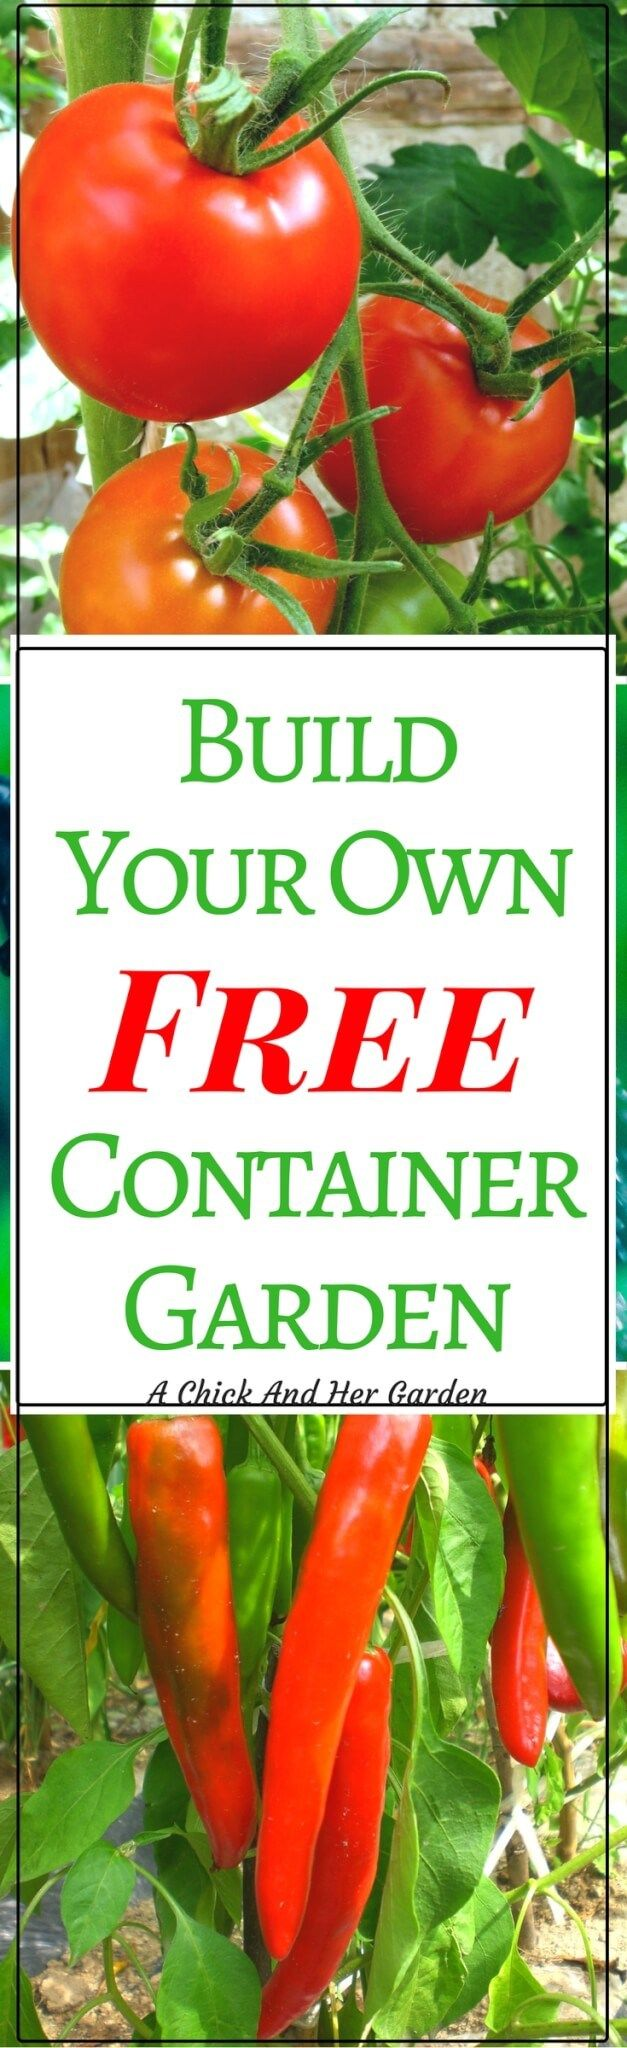 Sometimes we don't have the option of our dream garden. Whether it's lack of land, or poor soil, it doesn't mean you can't grow your own fresh produce! Check out how to build a free container garden!